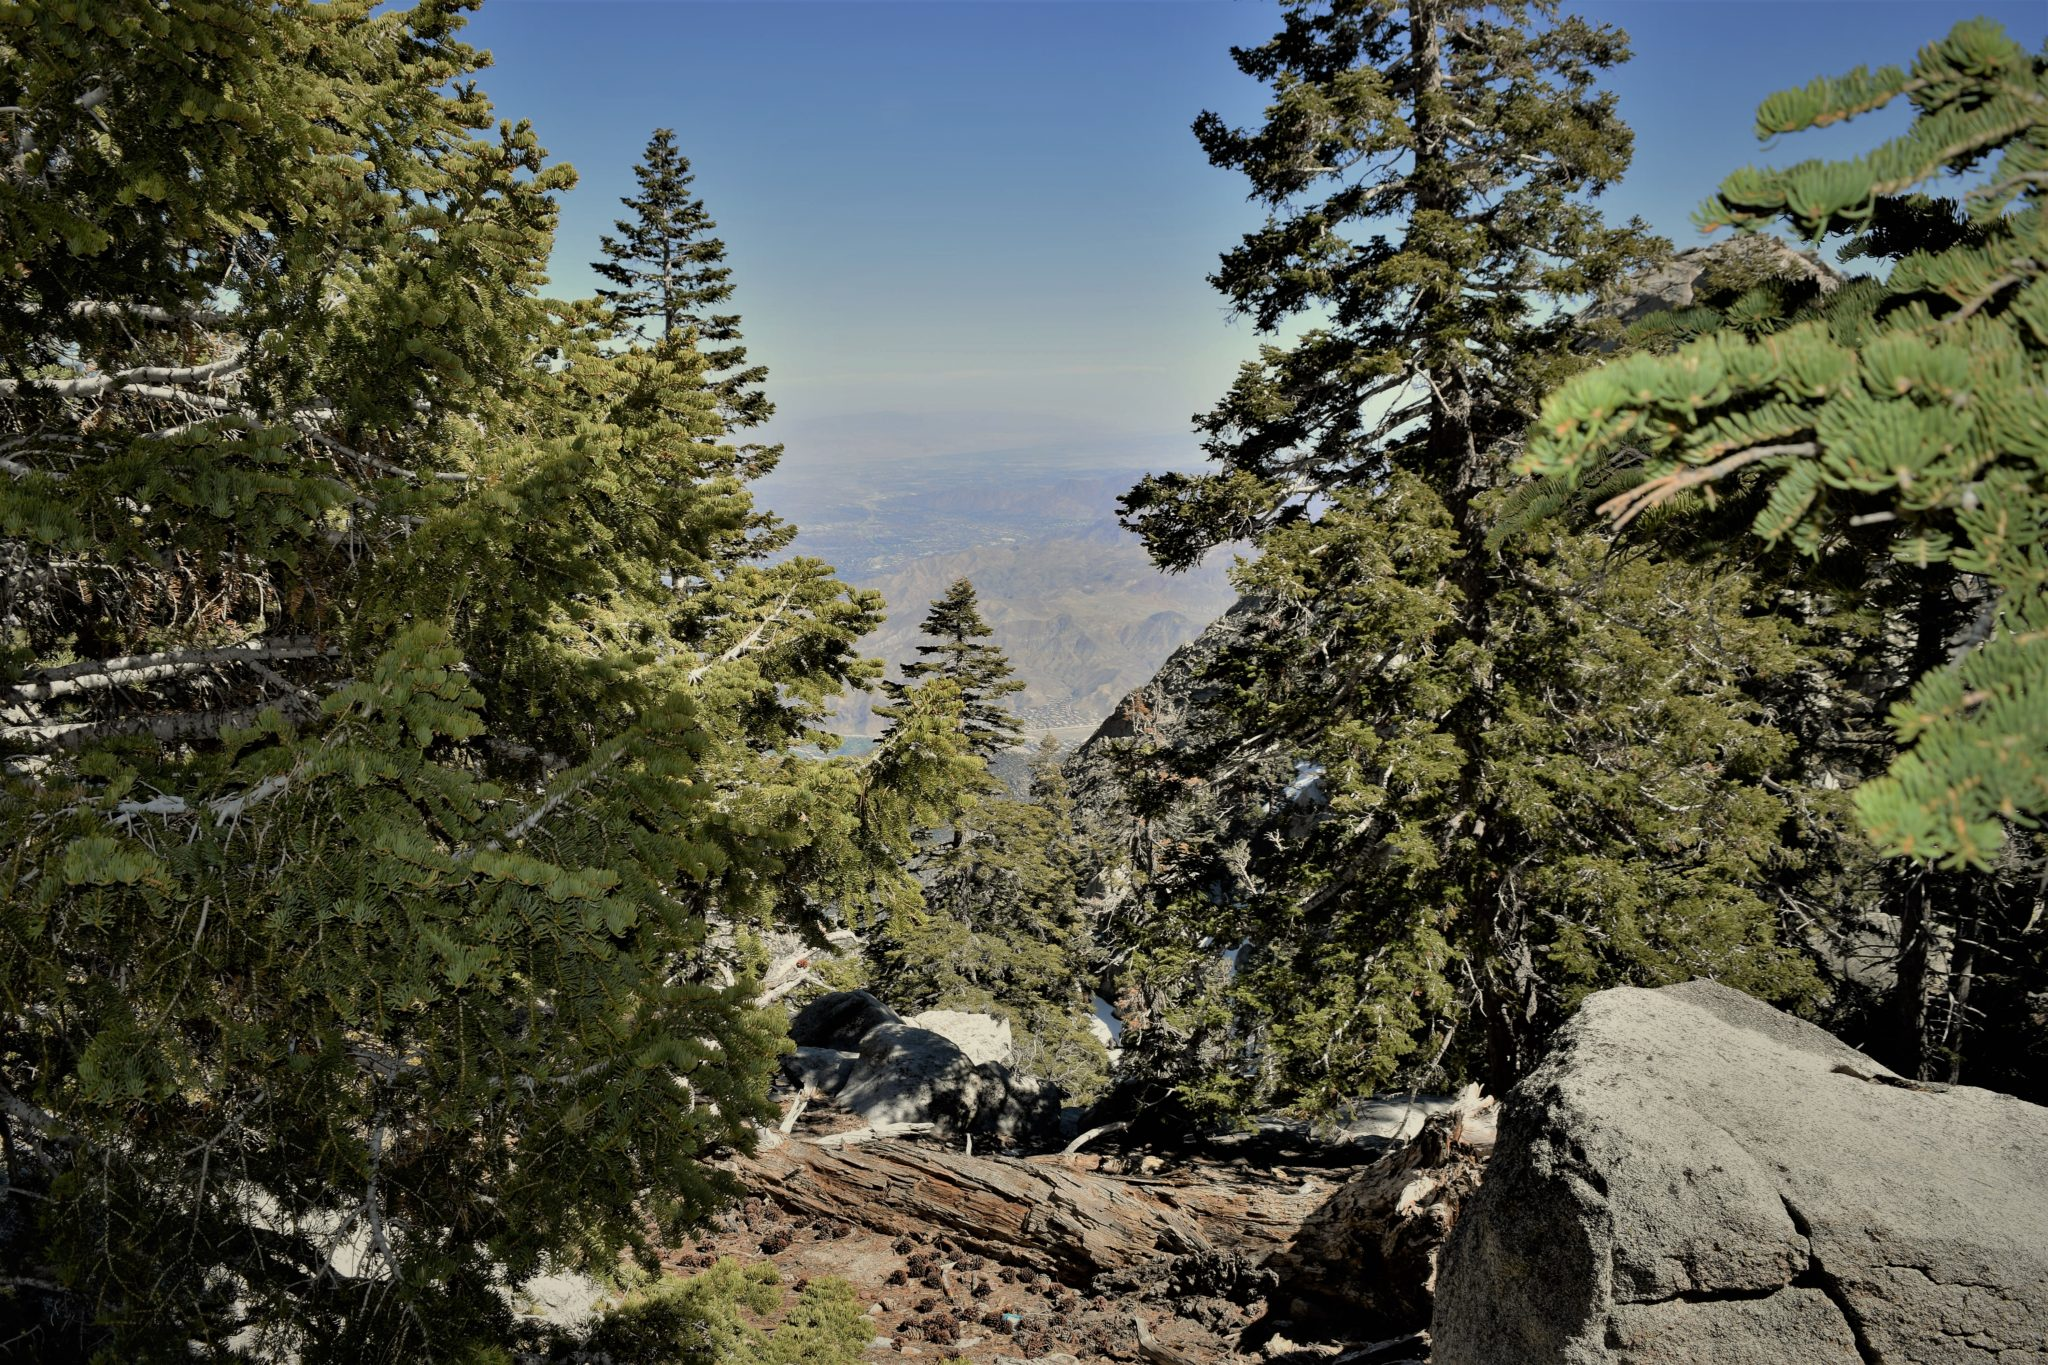 Notch desert view trail san jacinto state park, palm springs, california